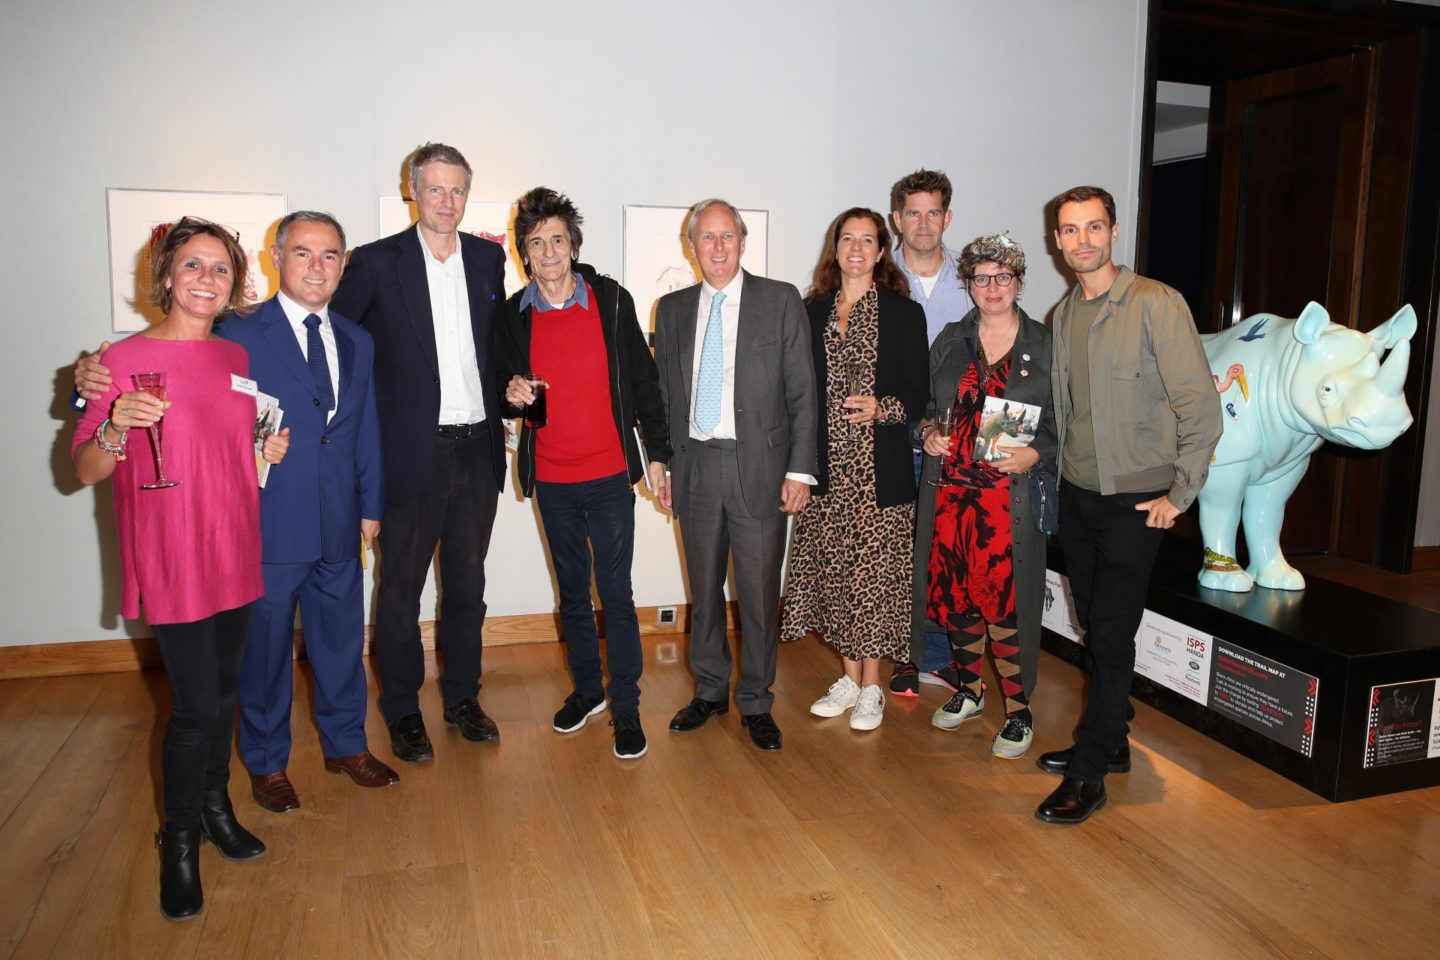 Tusk Rhino Trail Artists with Zac Goldsmith, Chris Westbrook, plus Charlie Mayhew and Adele Emmett from Tusk